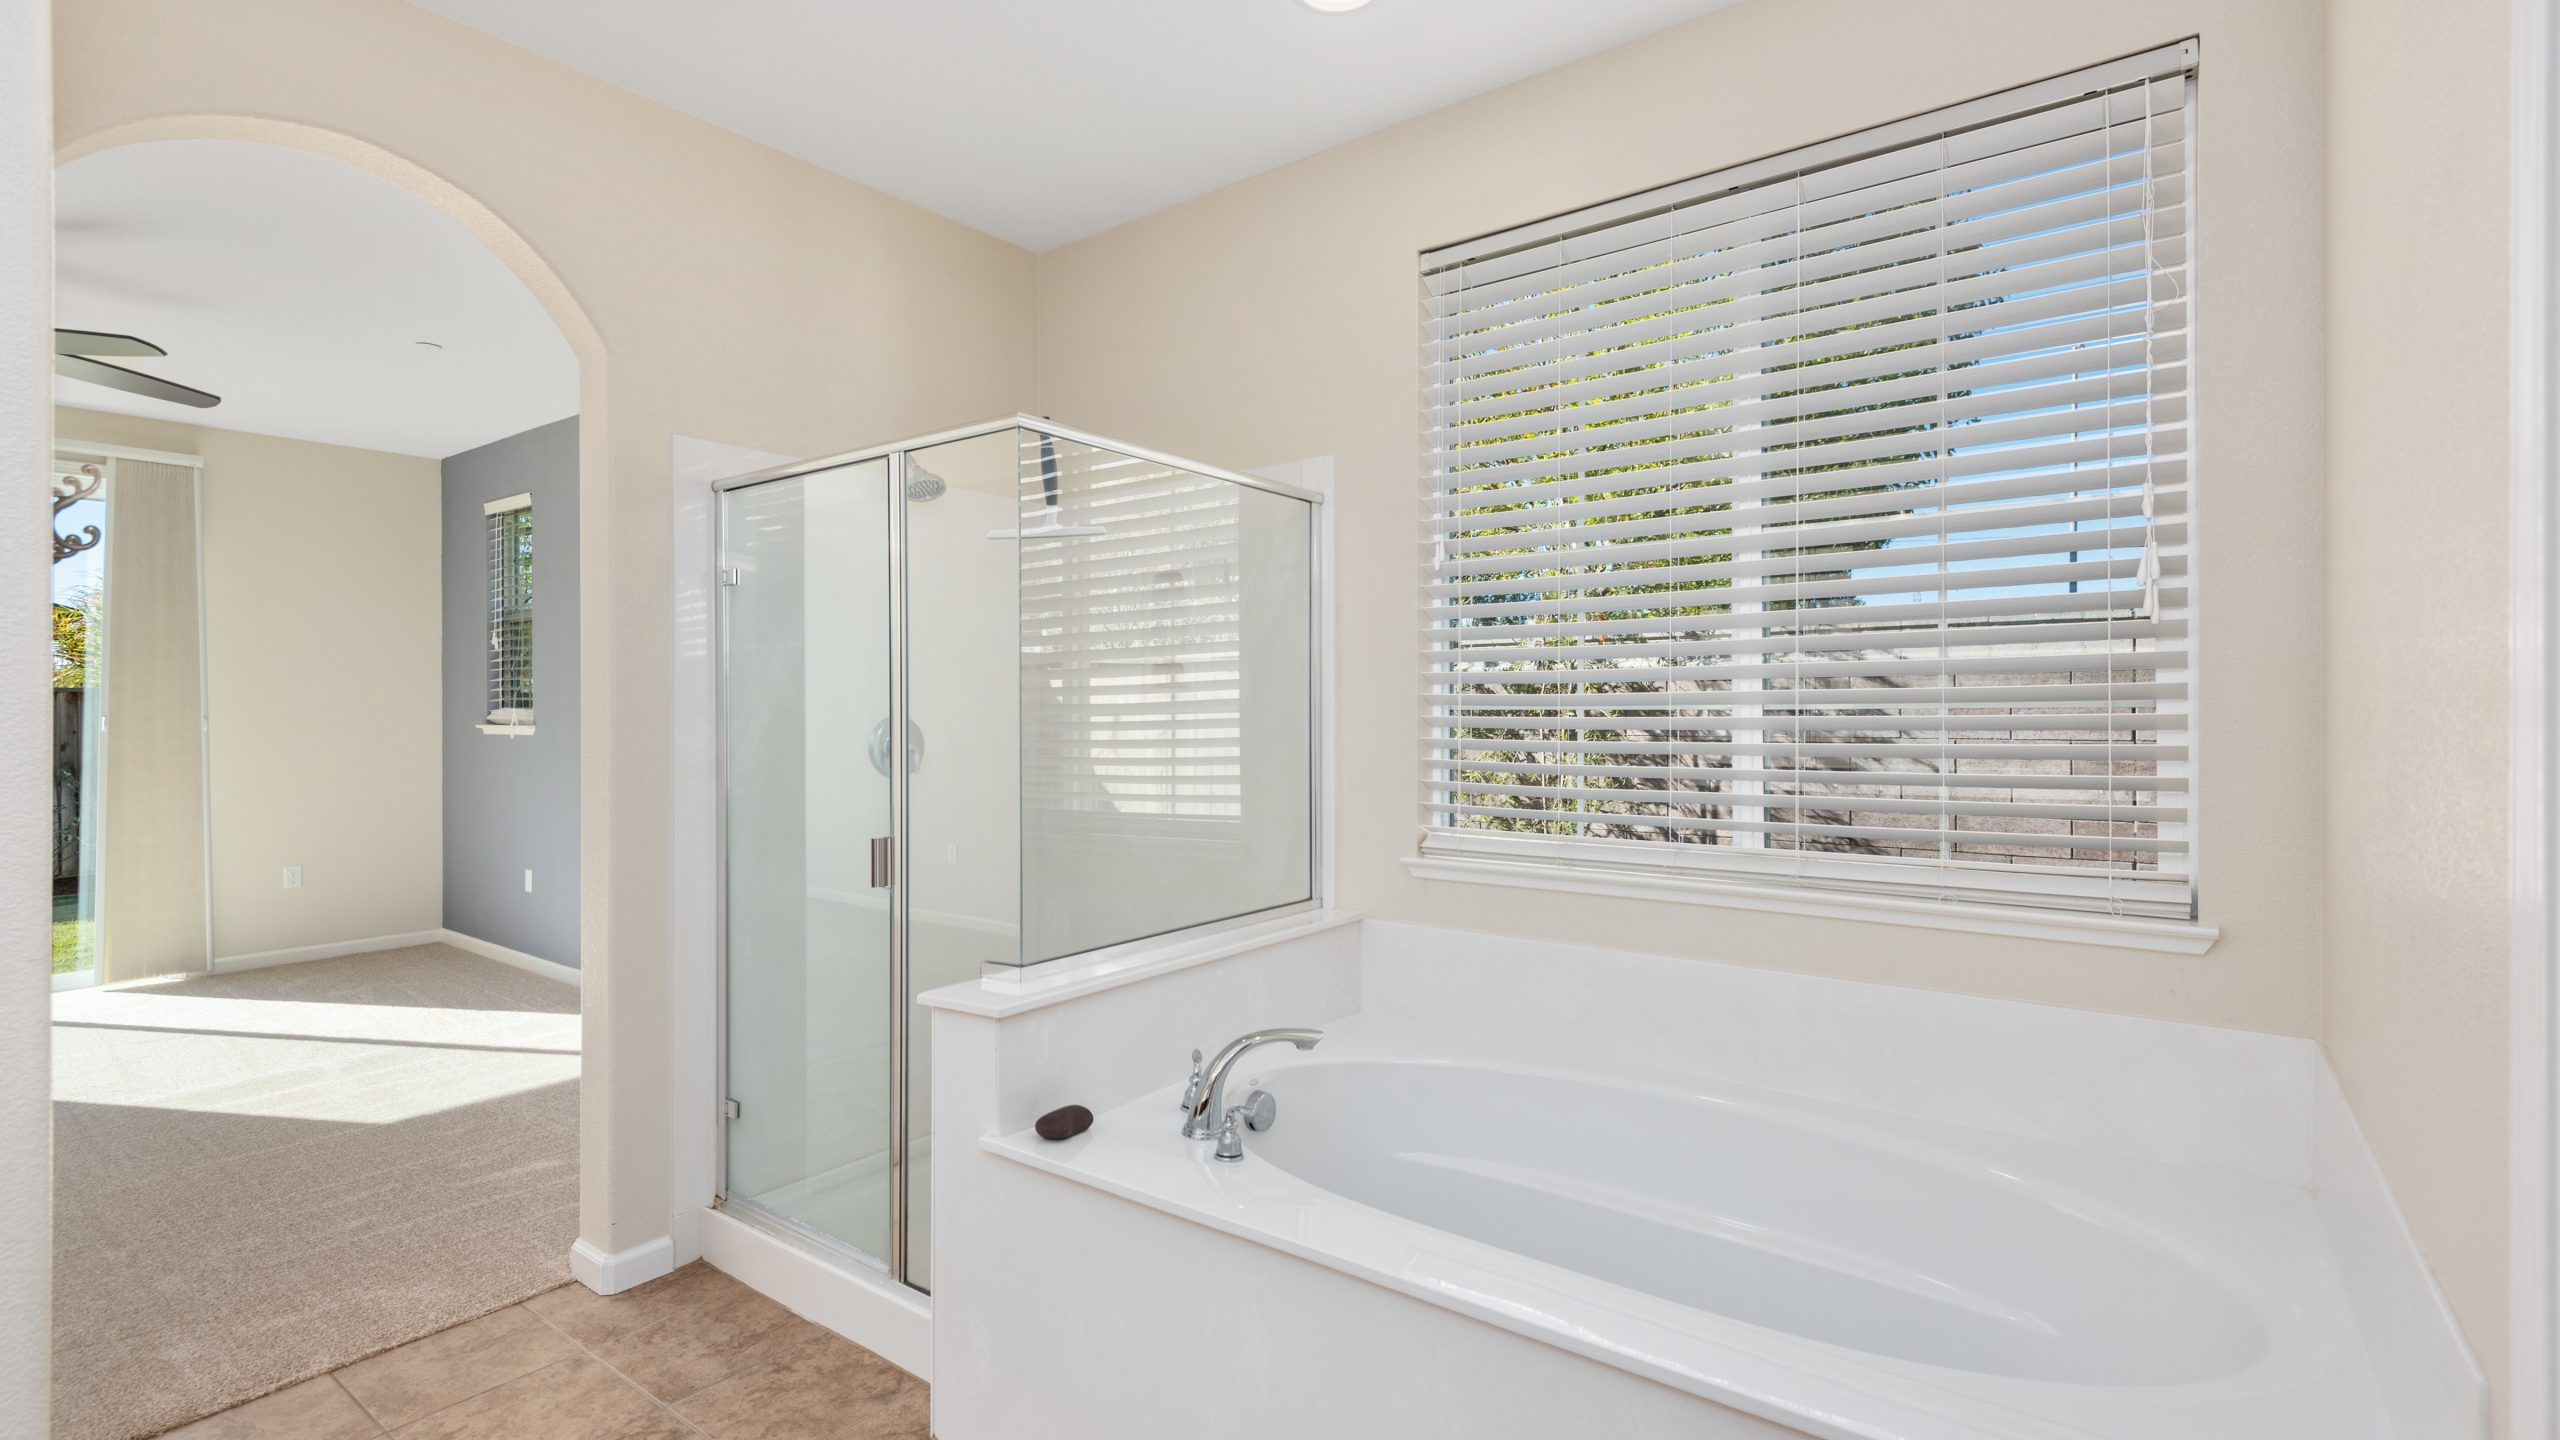 8373-Brookhaven-Circle-Discovery-Bay-19-of-42-1541610490